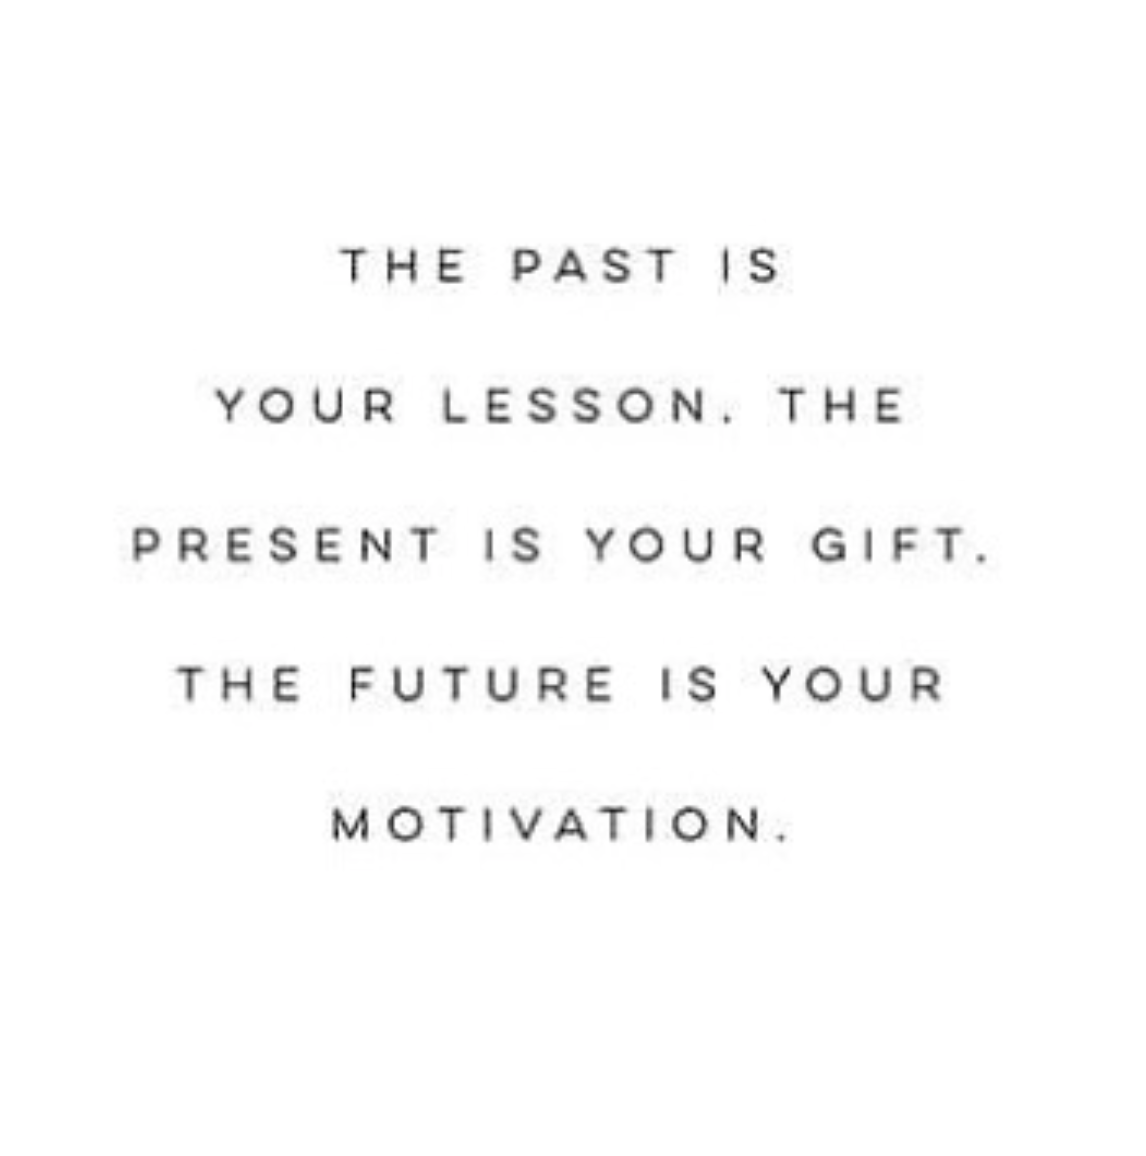 [Image] The past is your lesson. The present is your gift. The future is your motivation.